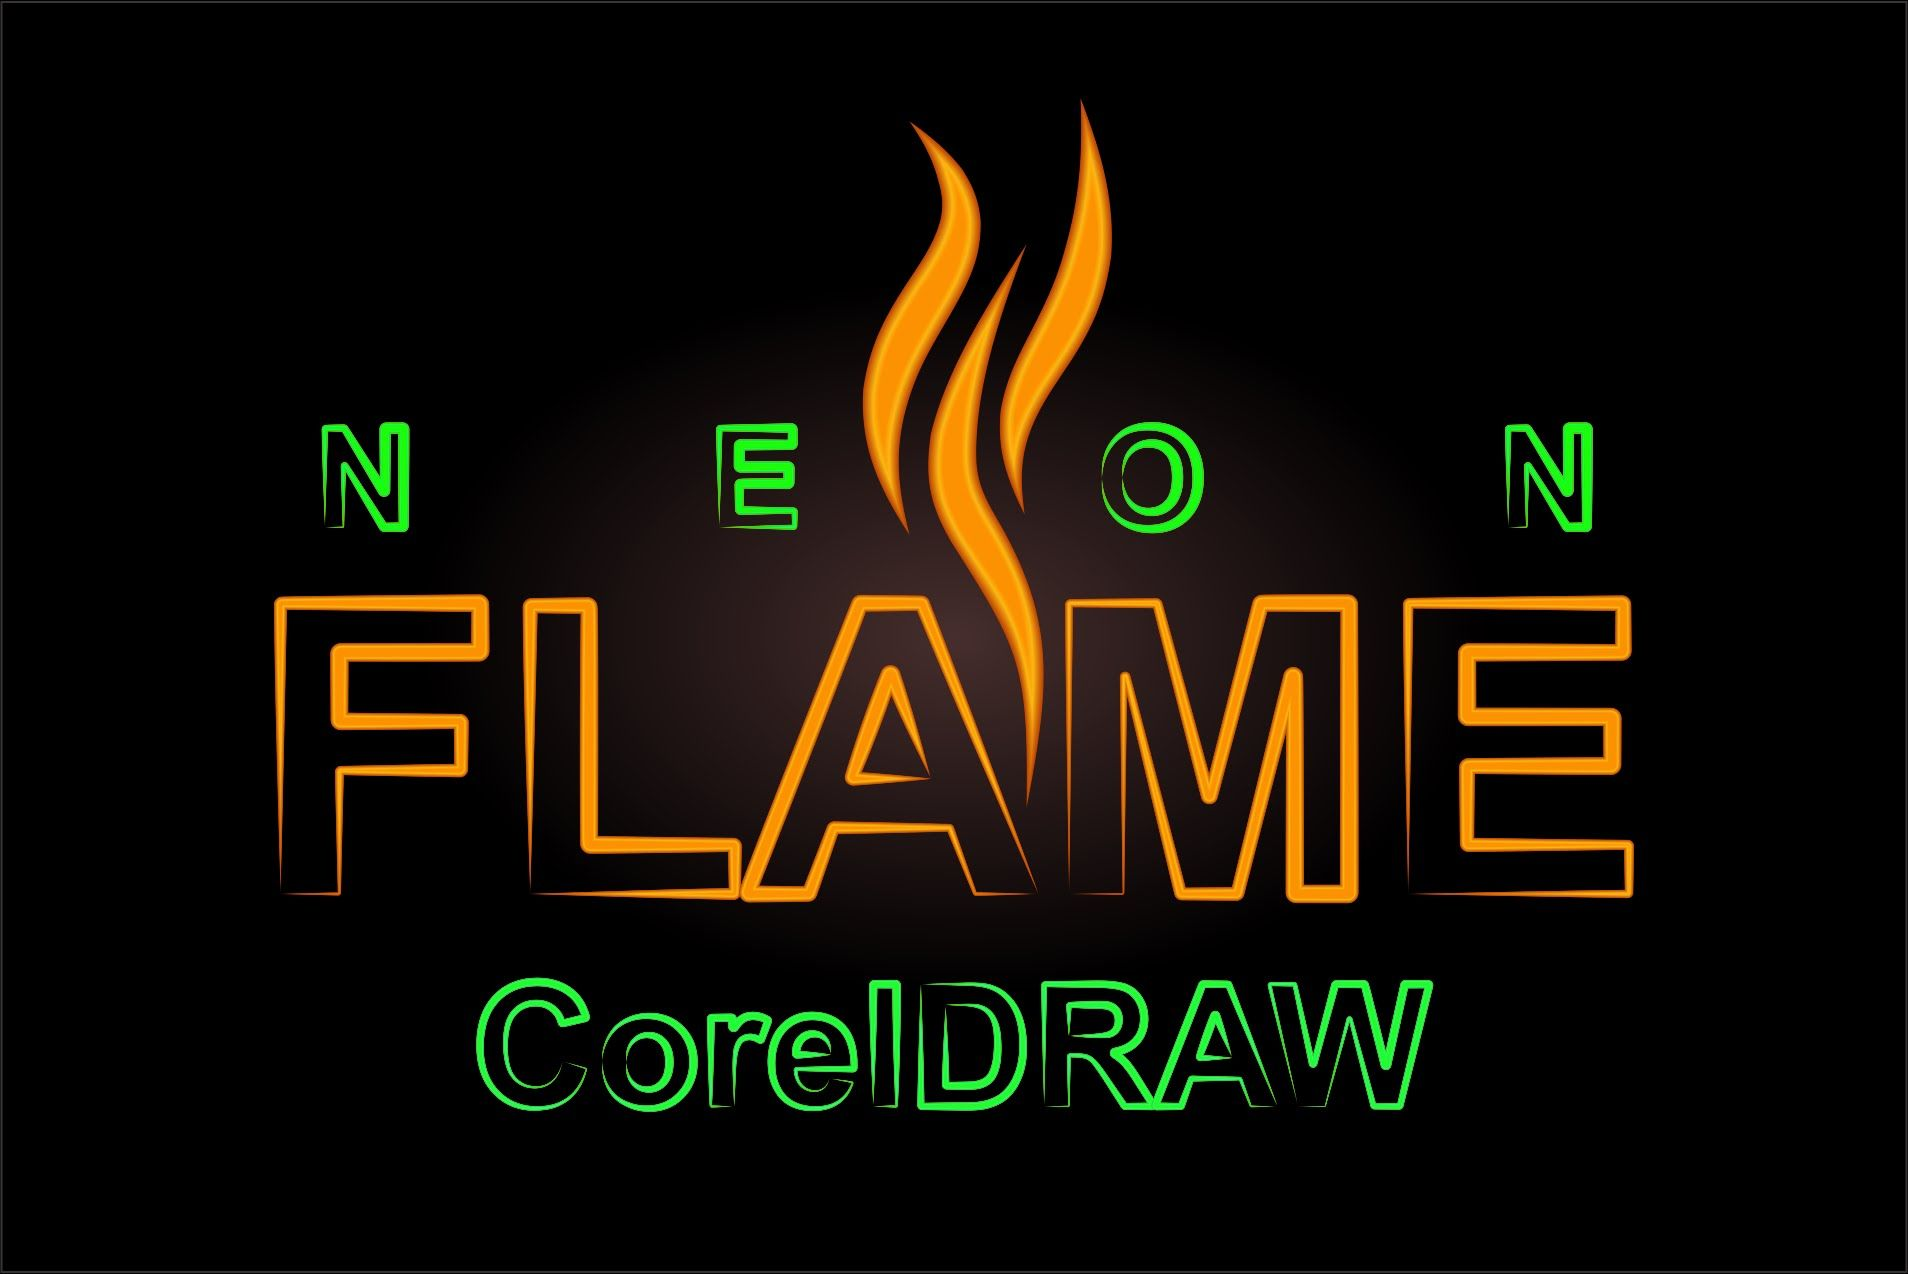 CorelDRAW: How to create a neon text effect ( video inspiration